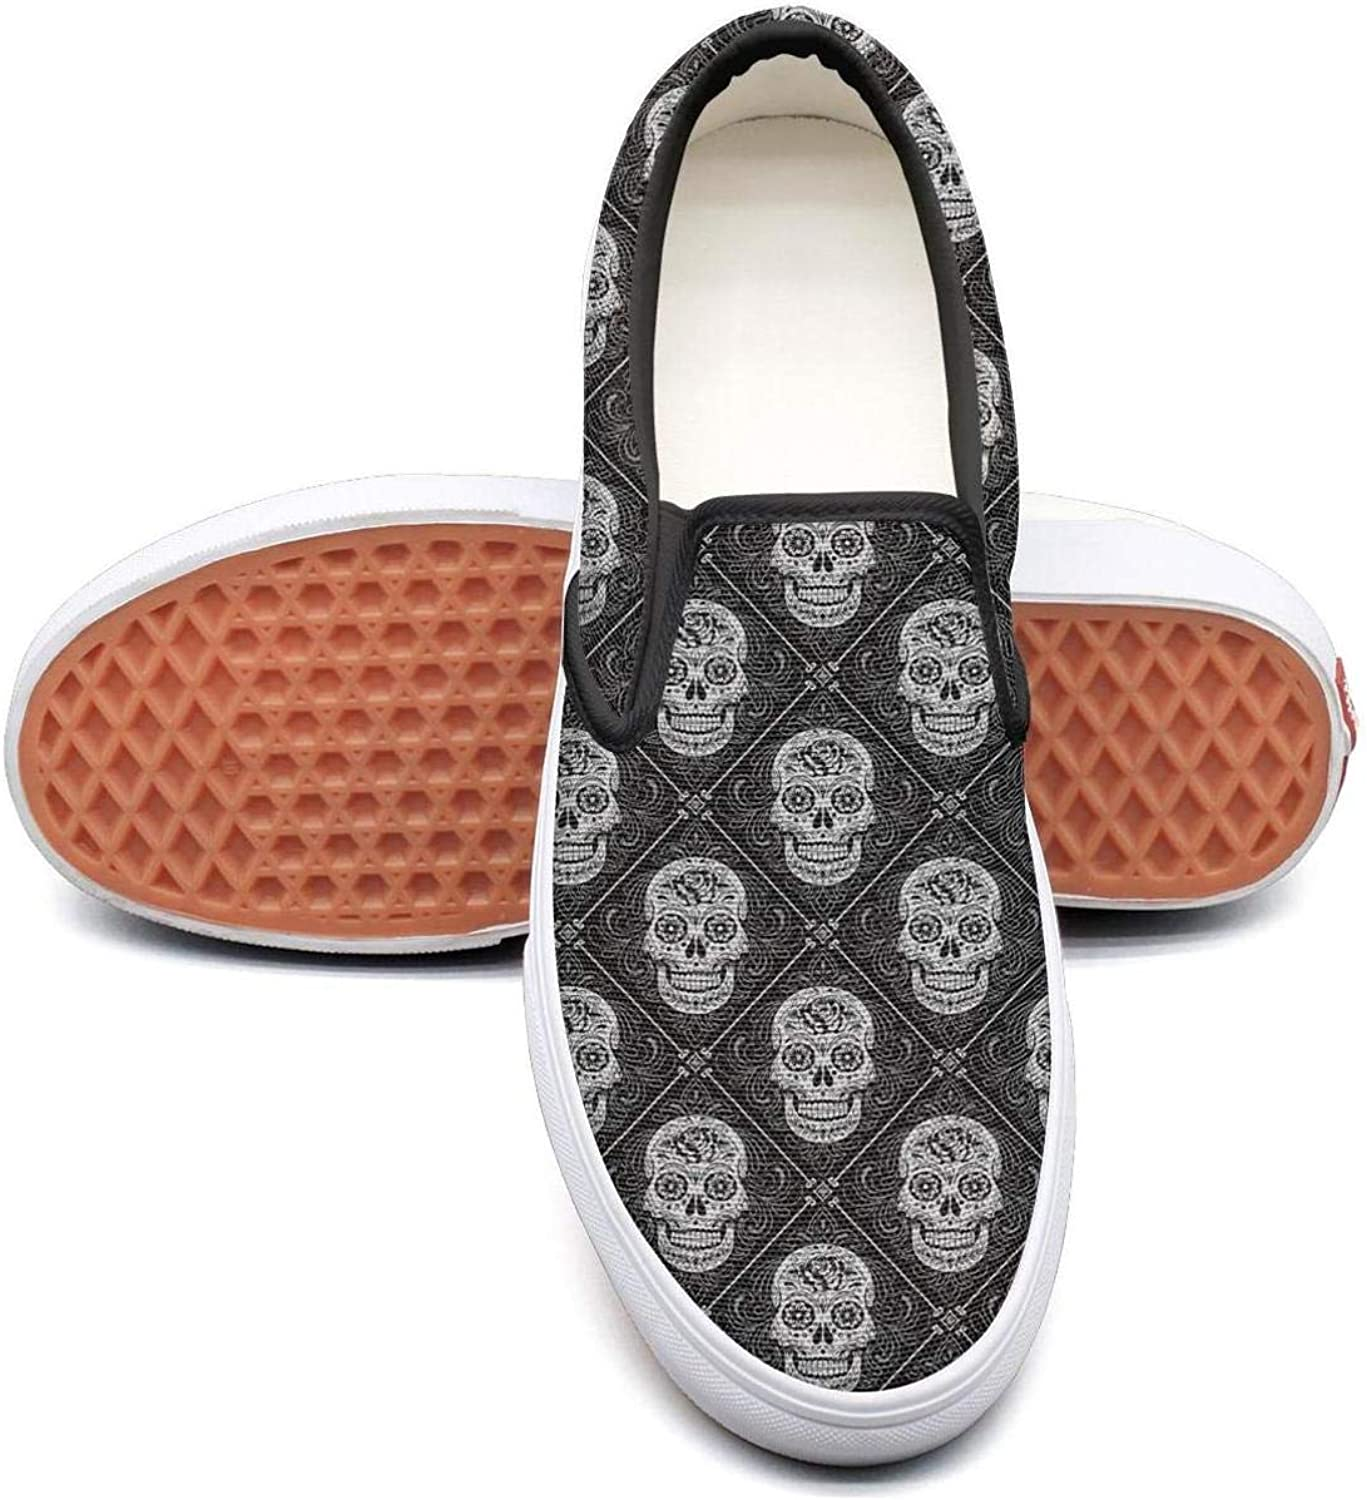 Skulls Slip On Canvas Upper Loafers Canvas shoes for Women Fashion